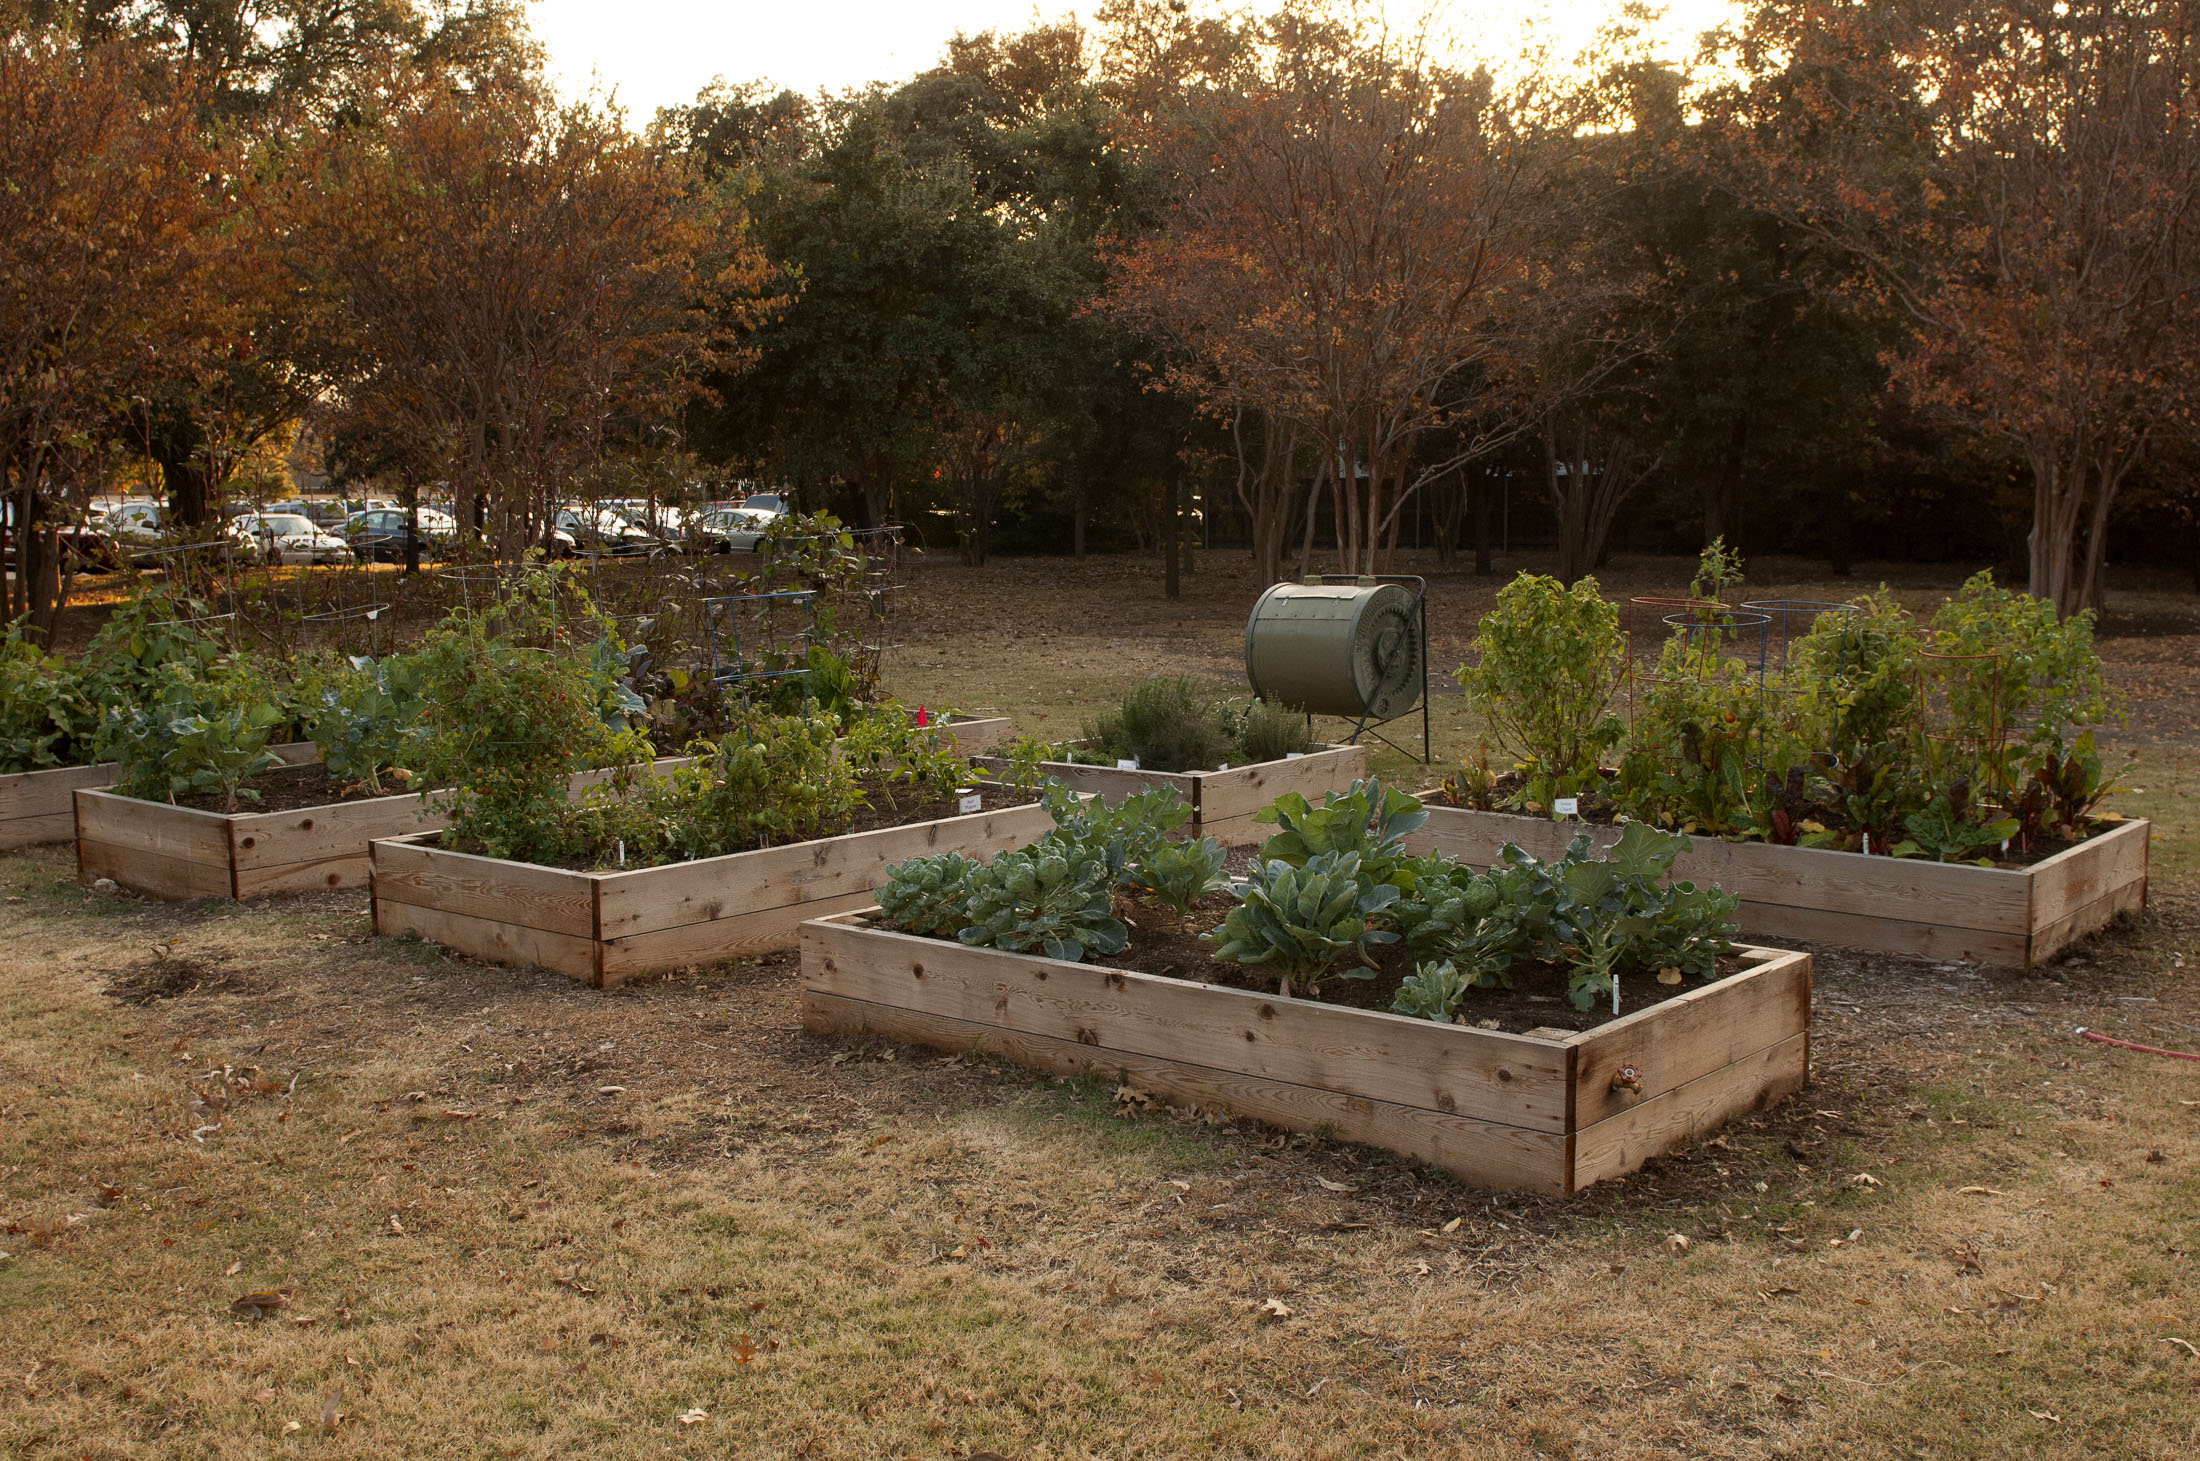 SMU's Community Garden Project